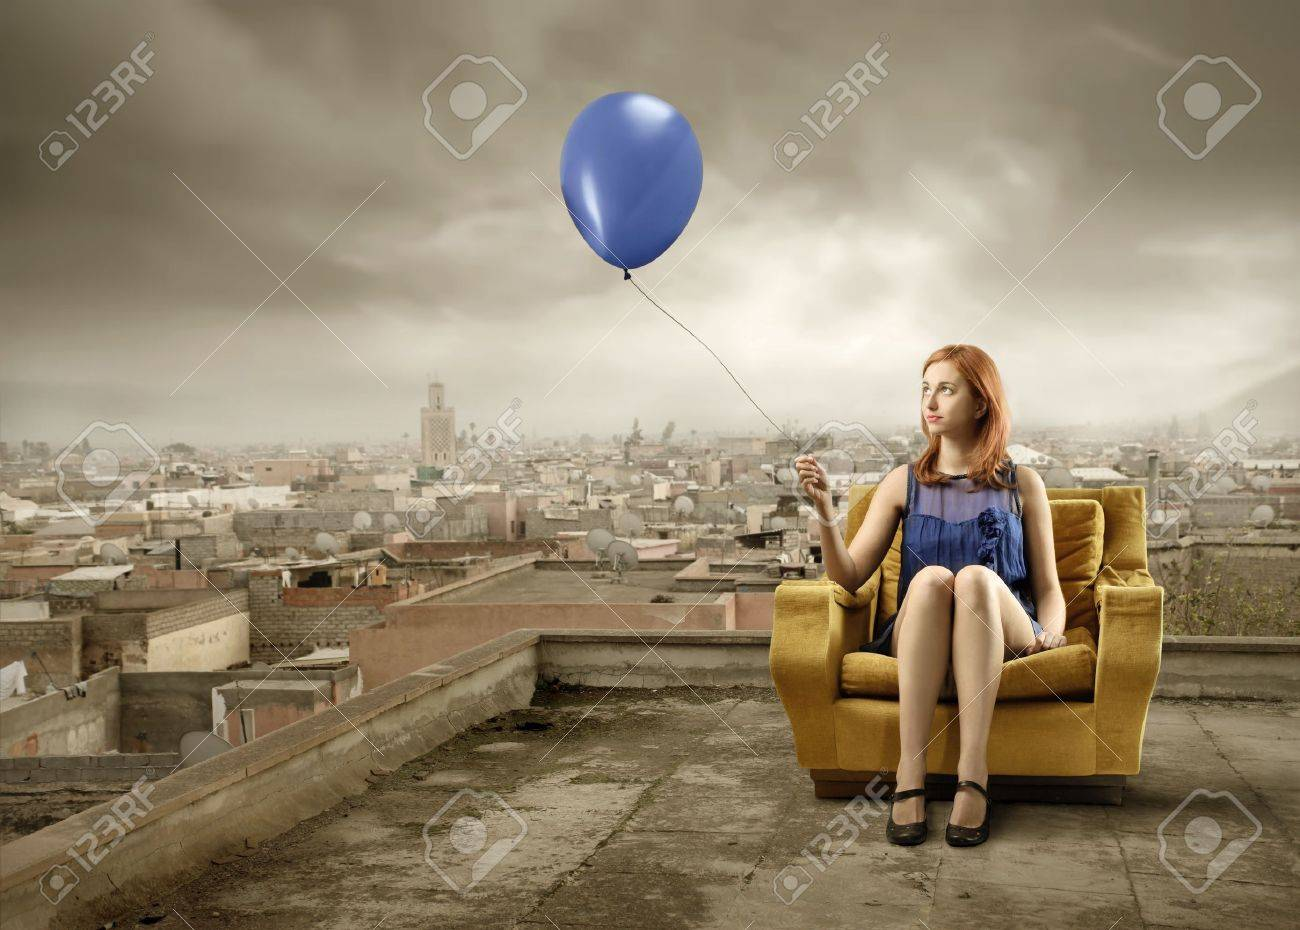 Elegant Woman Sitting On An Armchair And Holding A Balloon With Cityscape  On The Background Stock